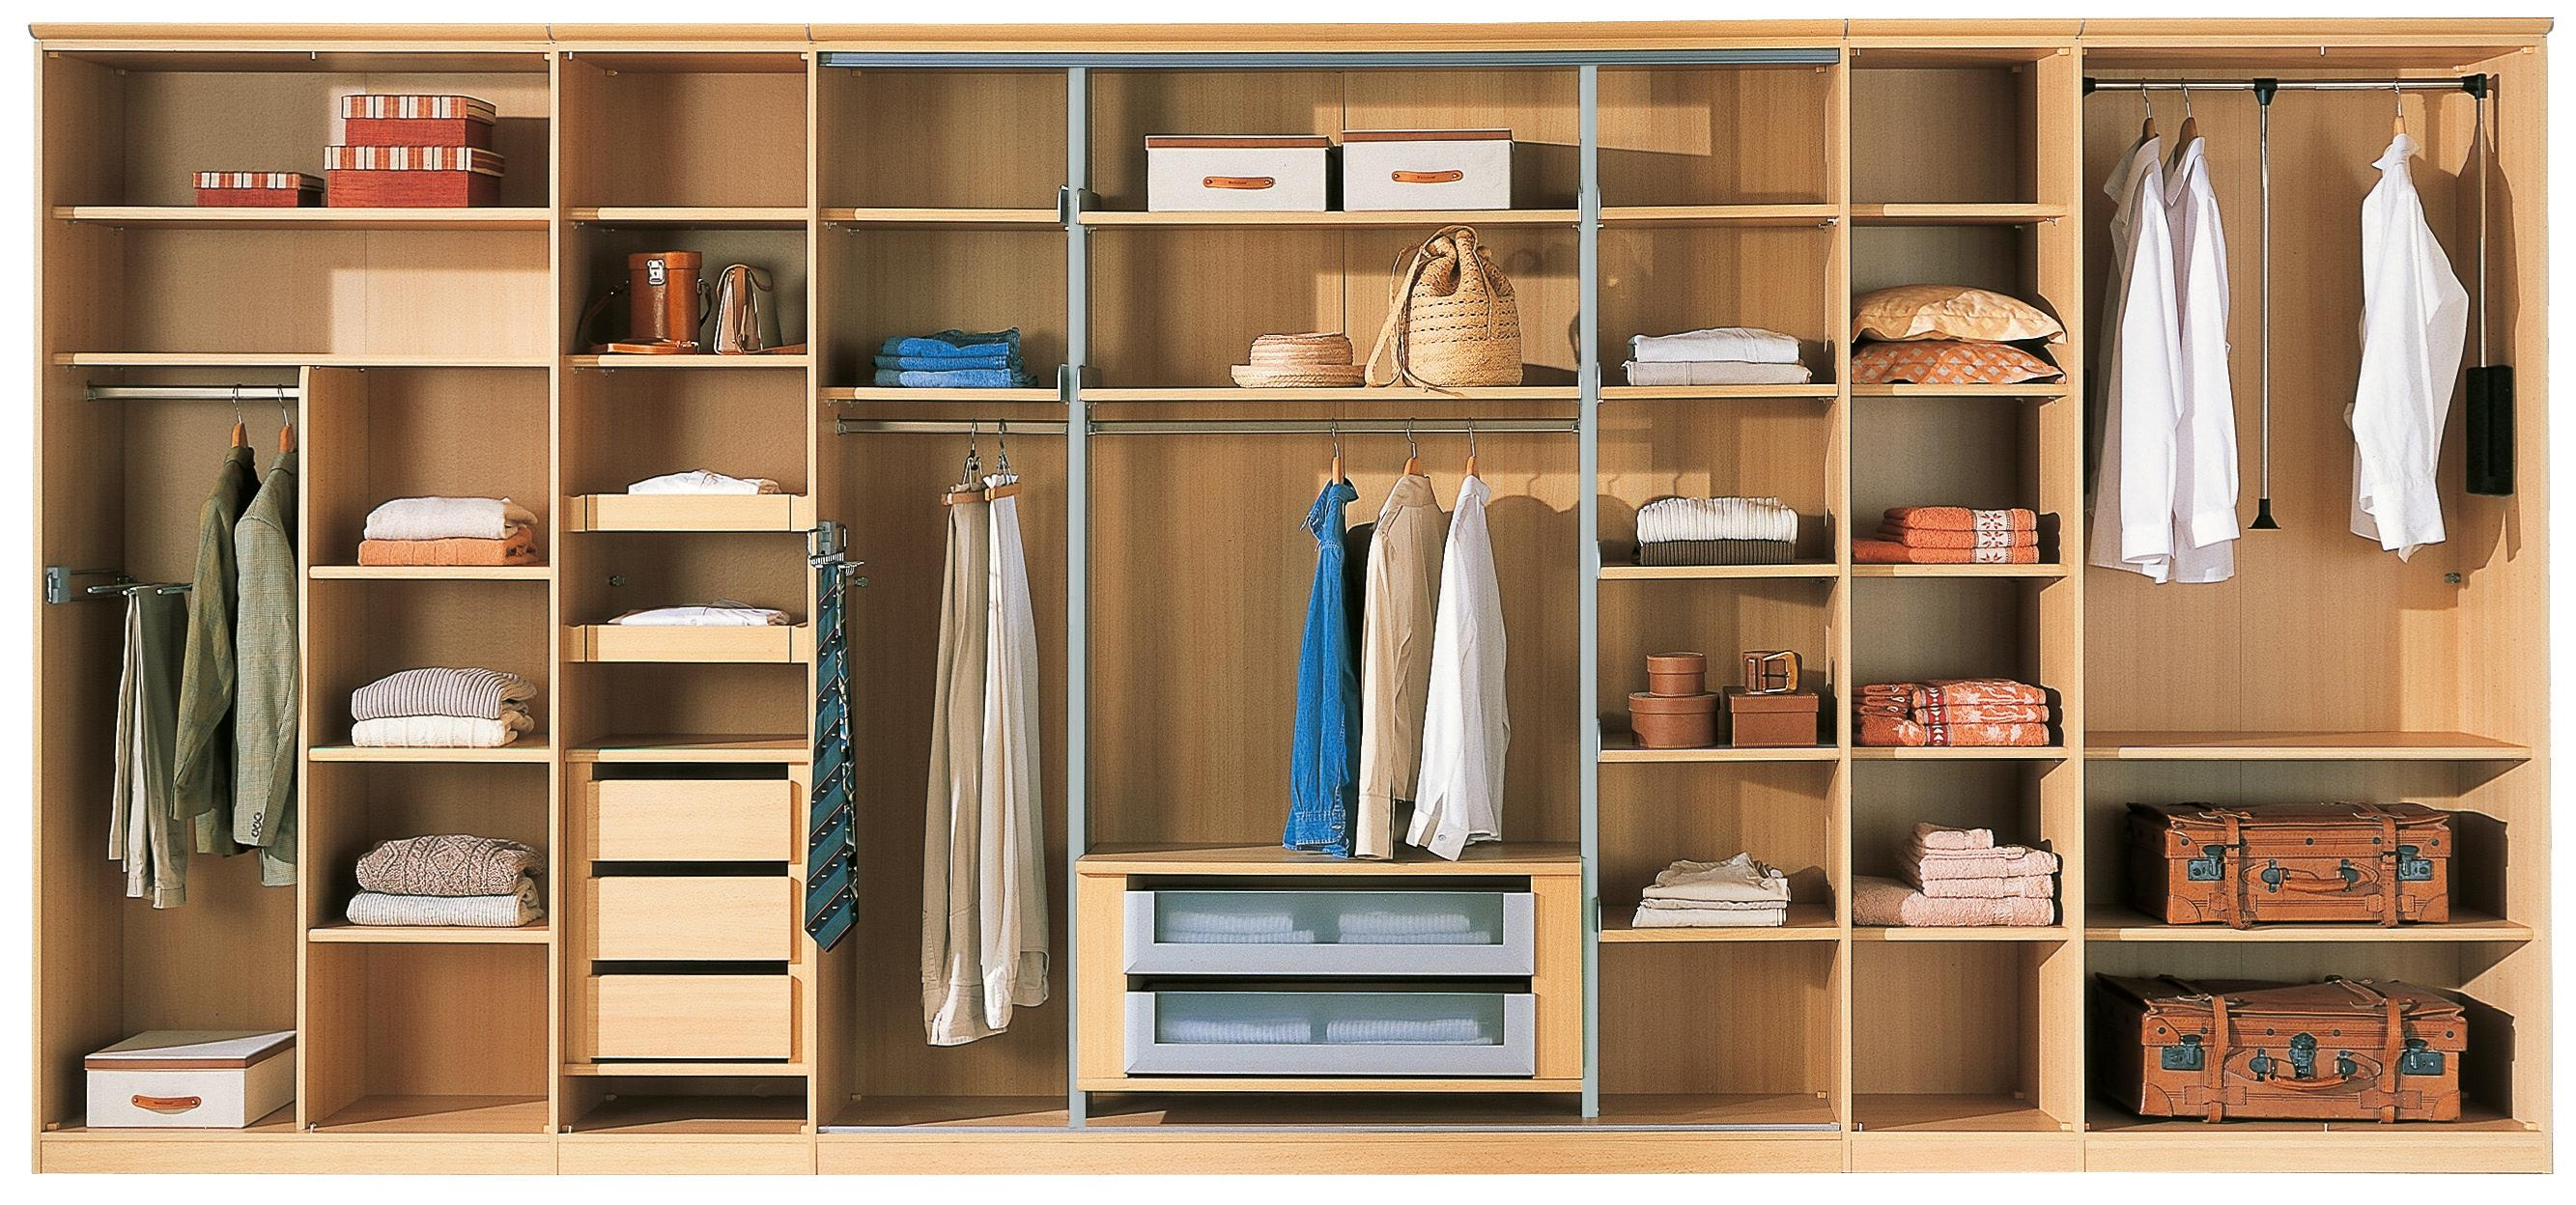 Bedroom Wardrobe Interior Shelves Design Ideas 2017 2018 Pertaining To Wardrobes With Drawers And Shelves (View 5 of 15)